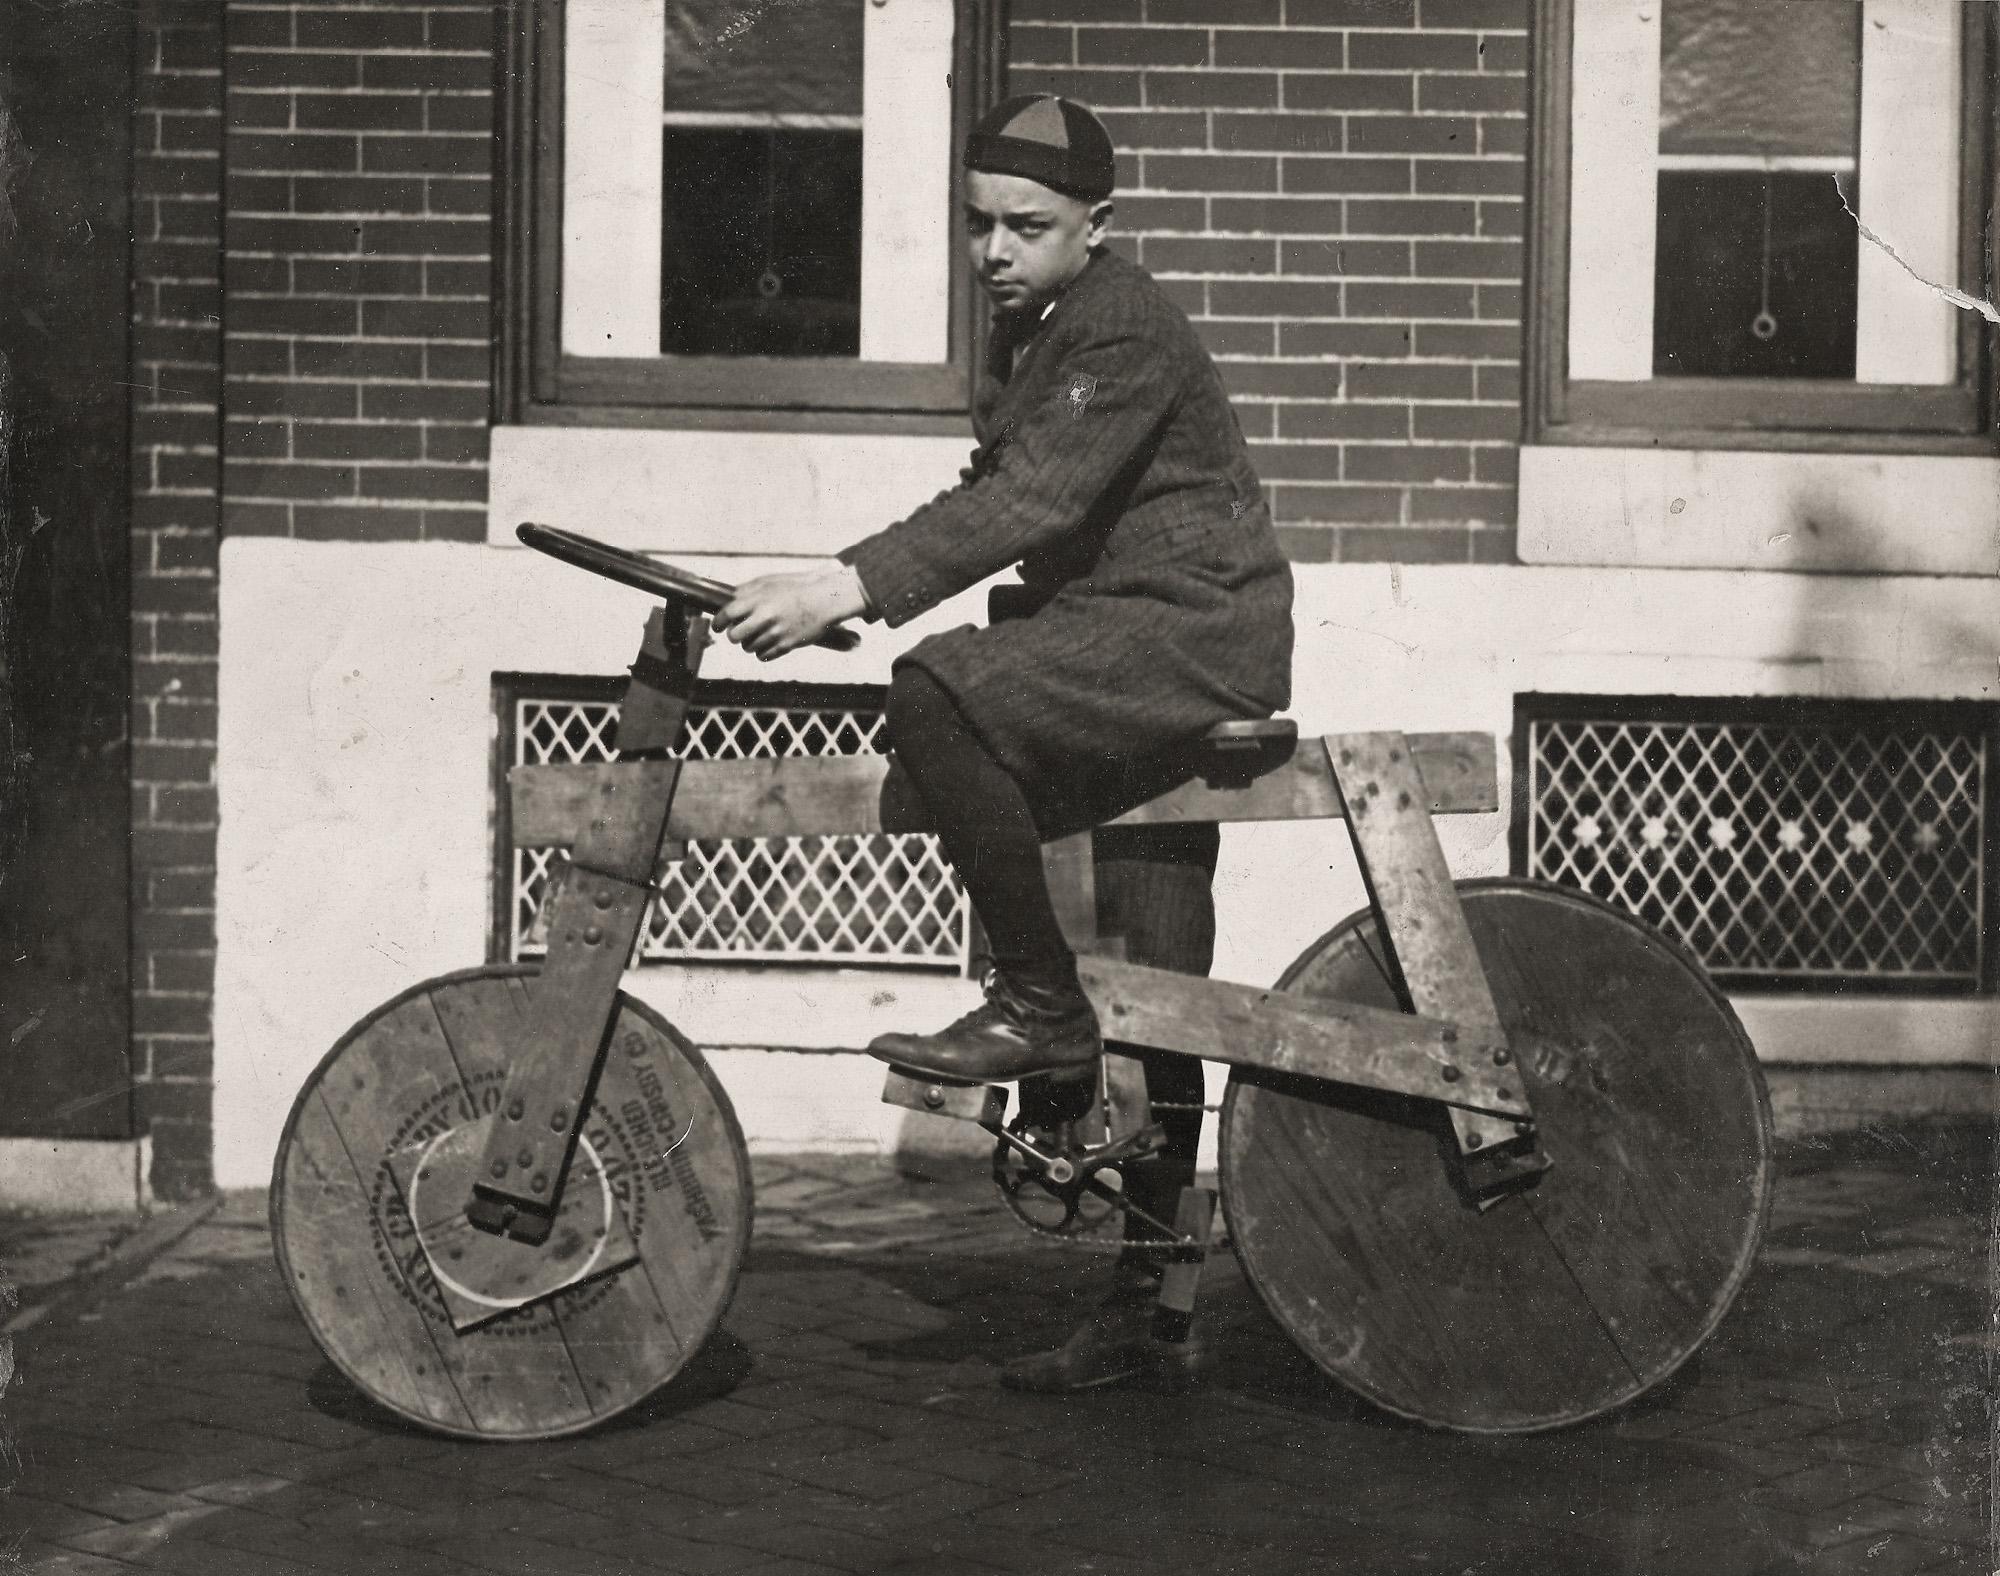 Baltimore's Homemade Bicycle Circa 1920